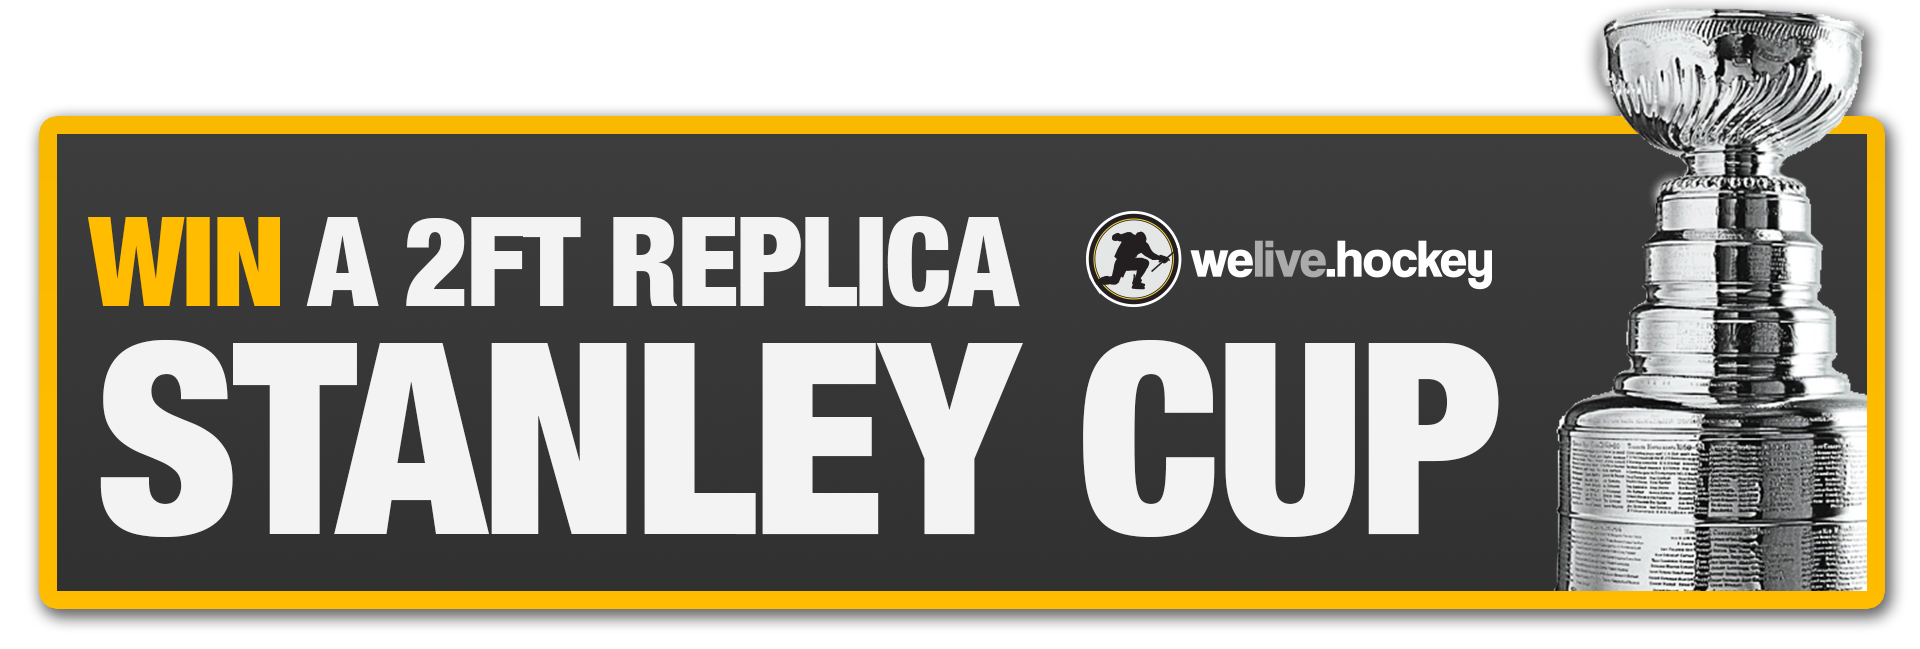 Win the World's Largest Replica Stanley Cup - Click here to enter. Contest Ends May 25!